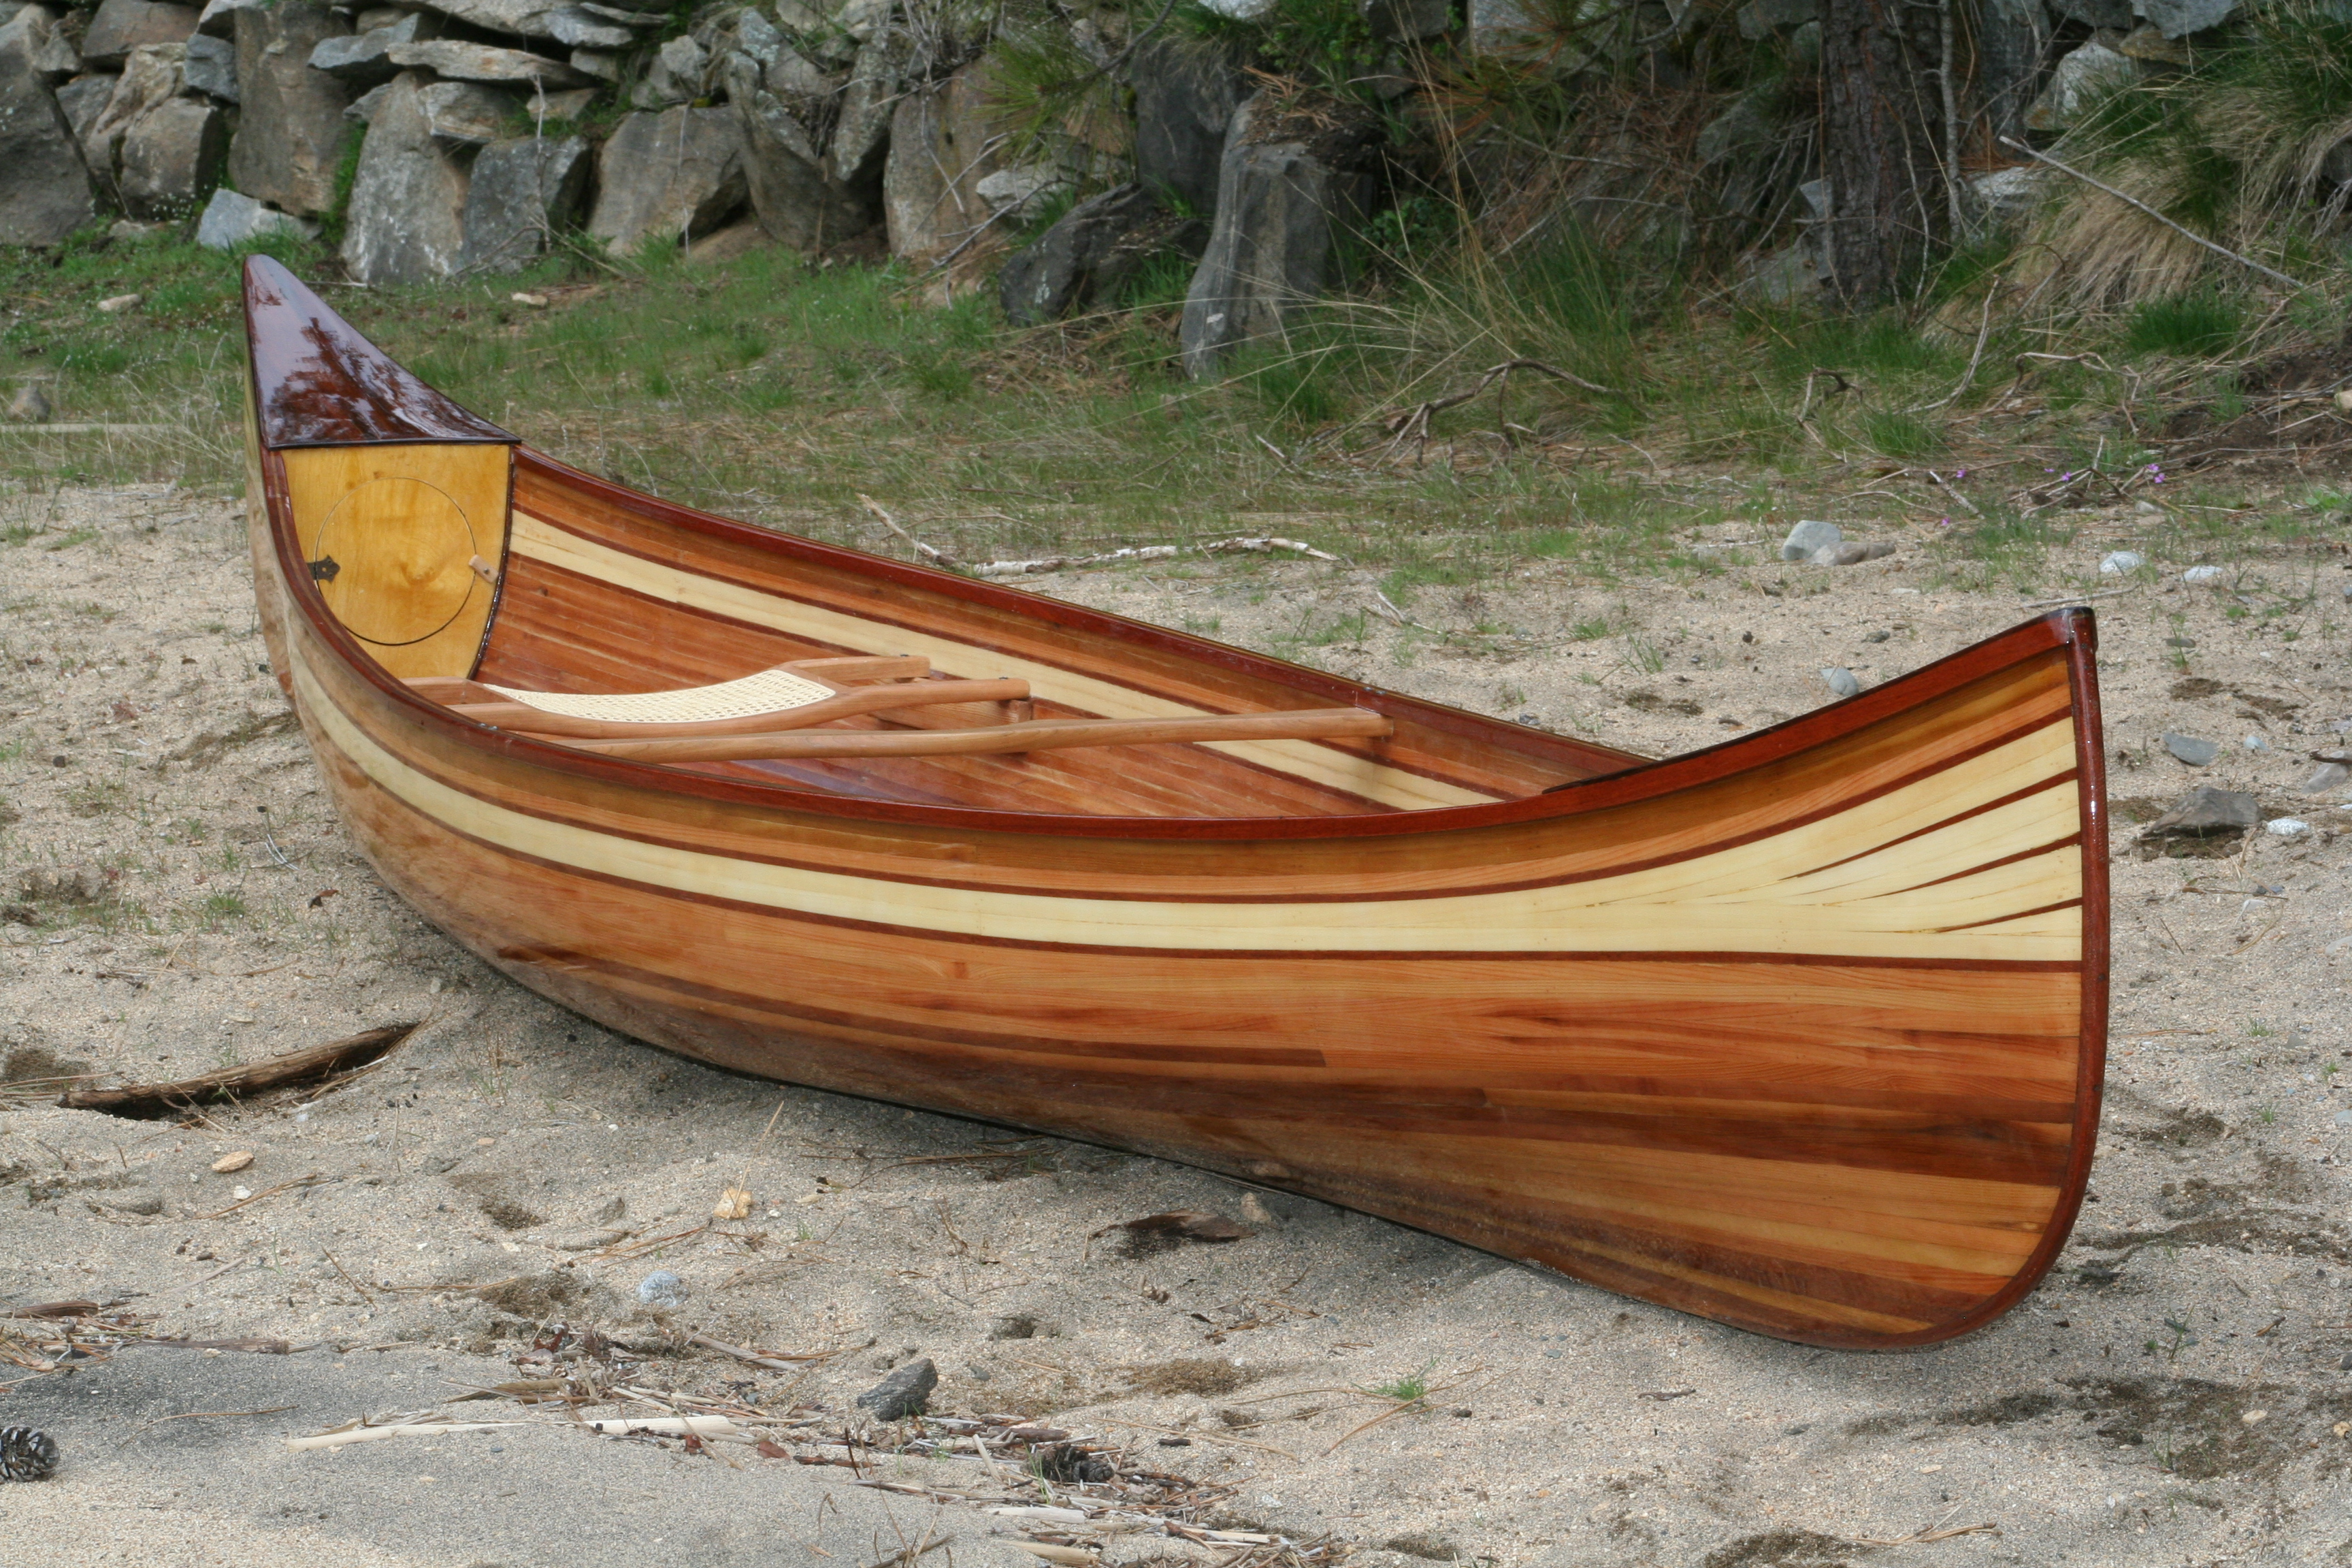 Wood Strip Gallery | Heirloom Paddle Sports